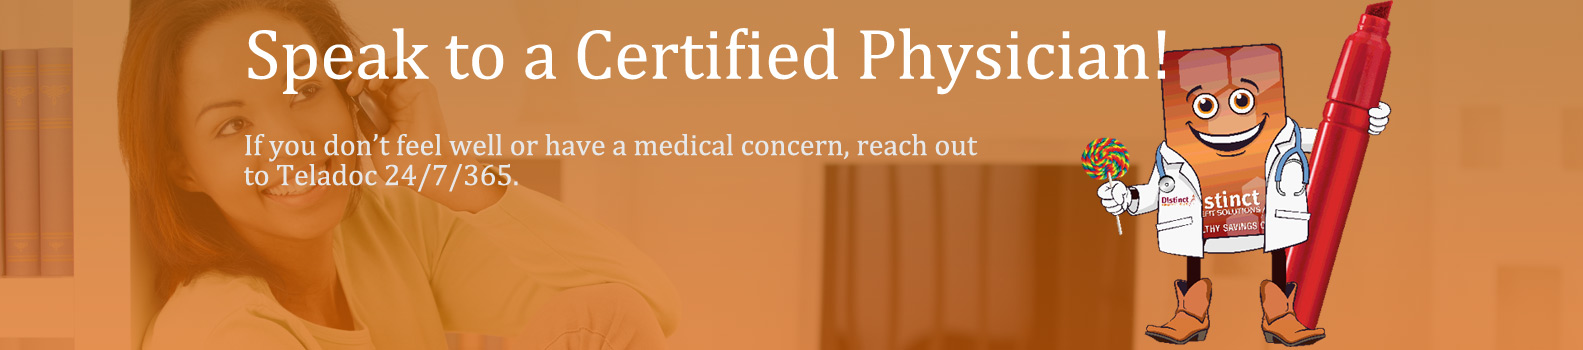 Speak to a certified physician!